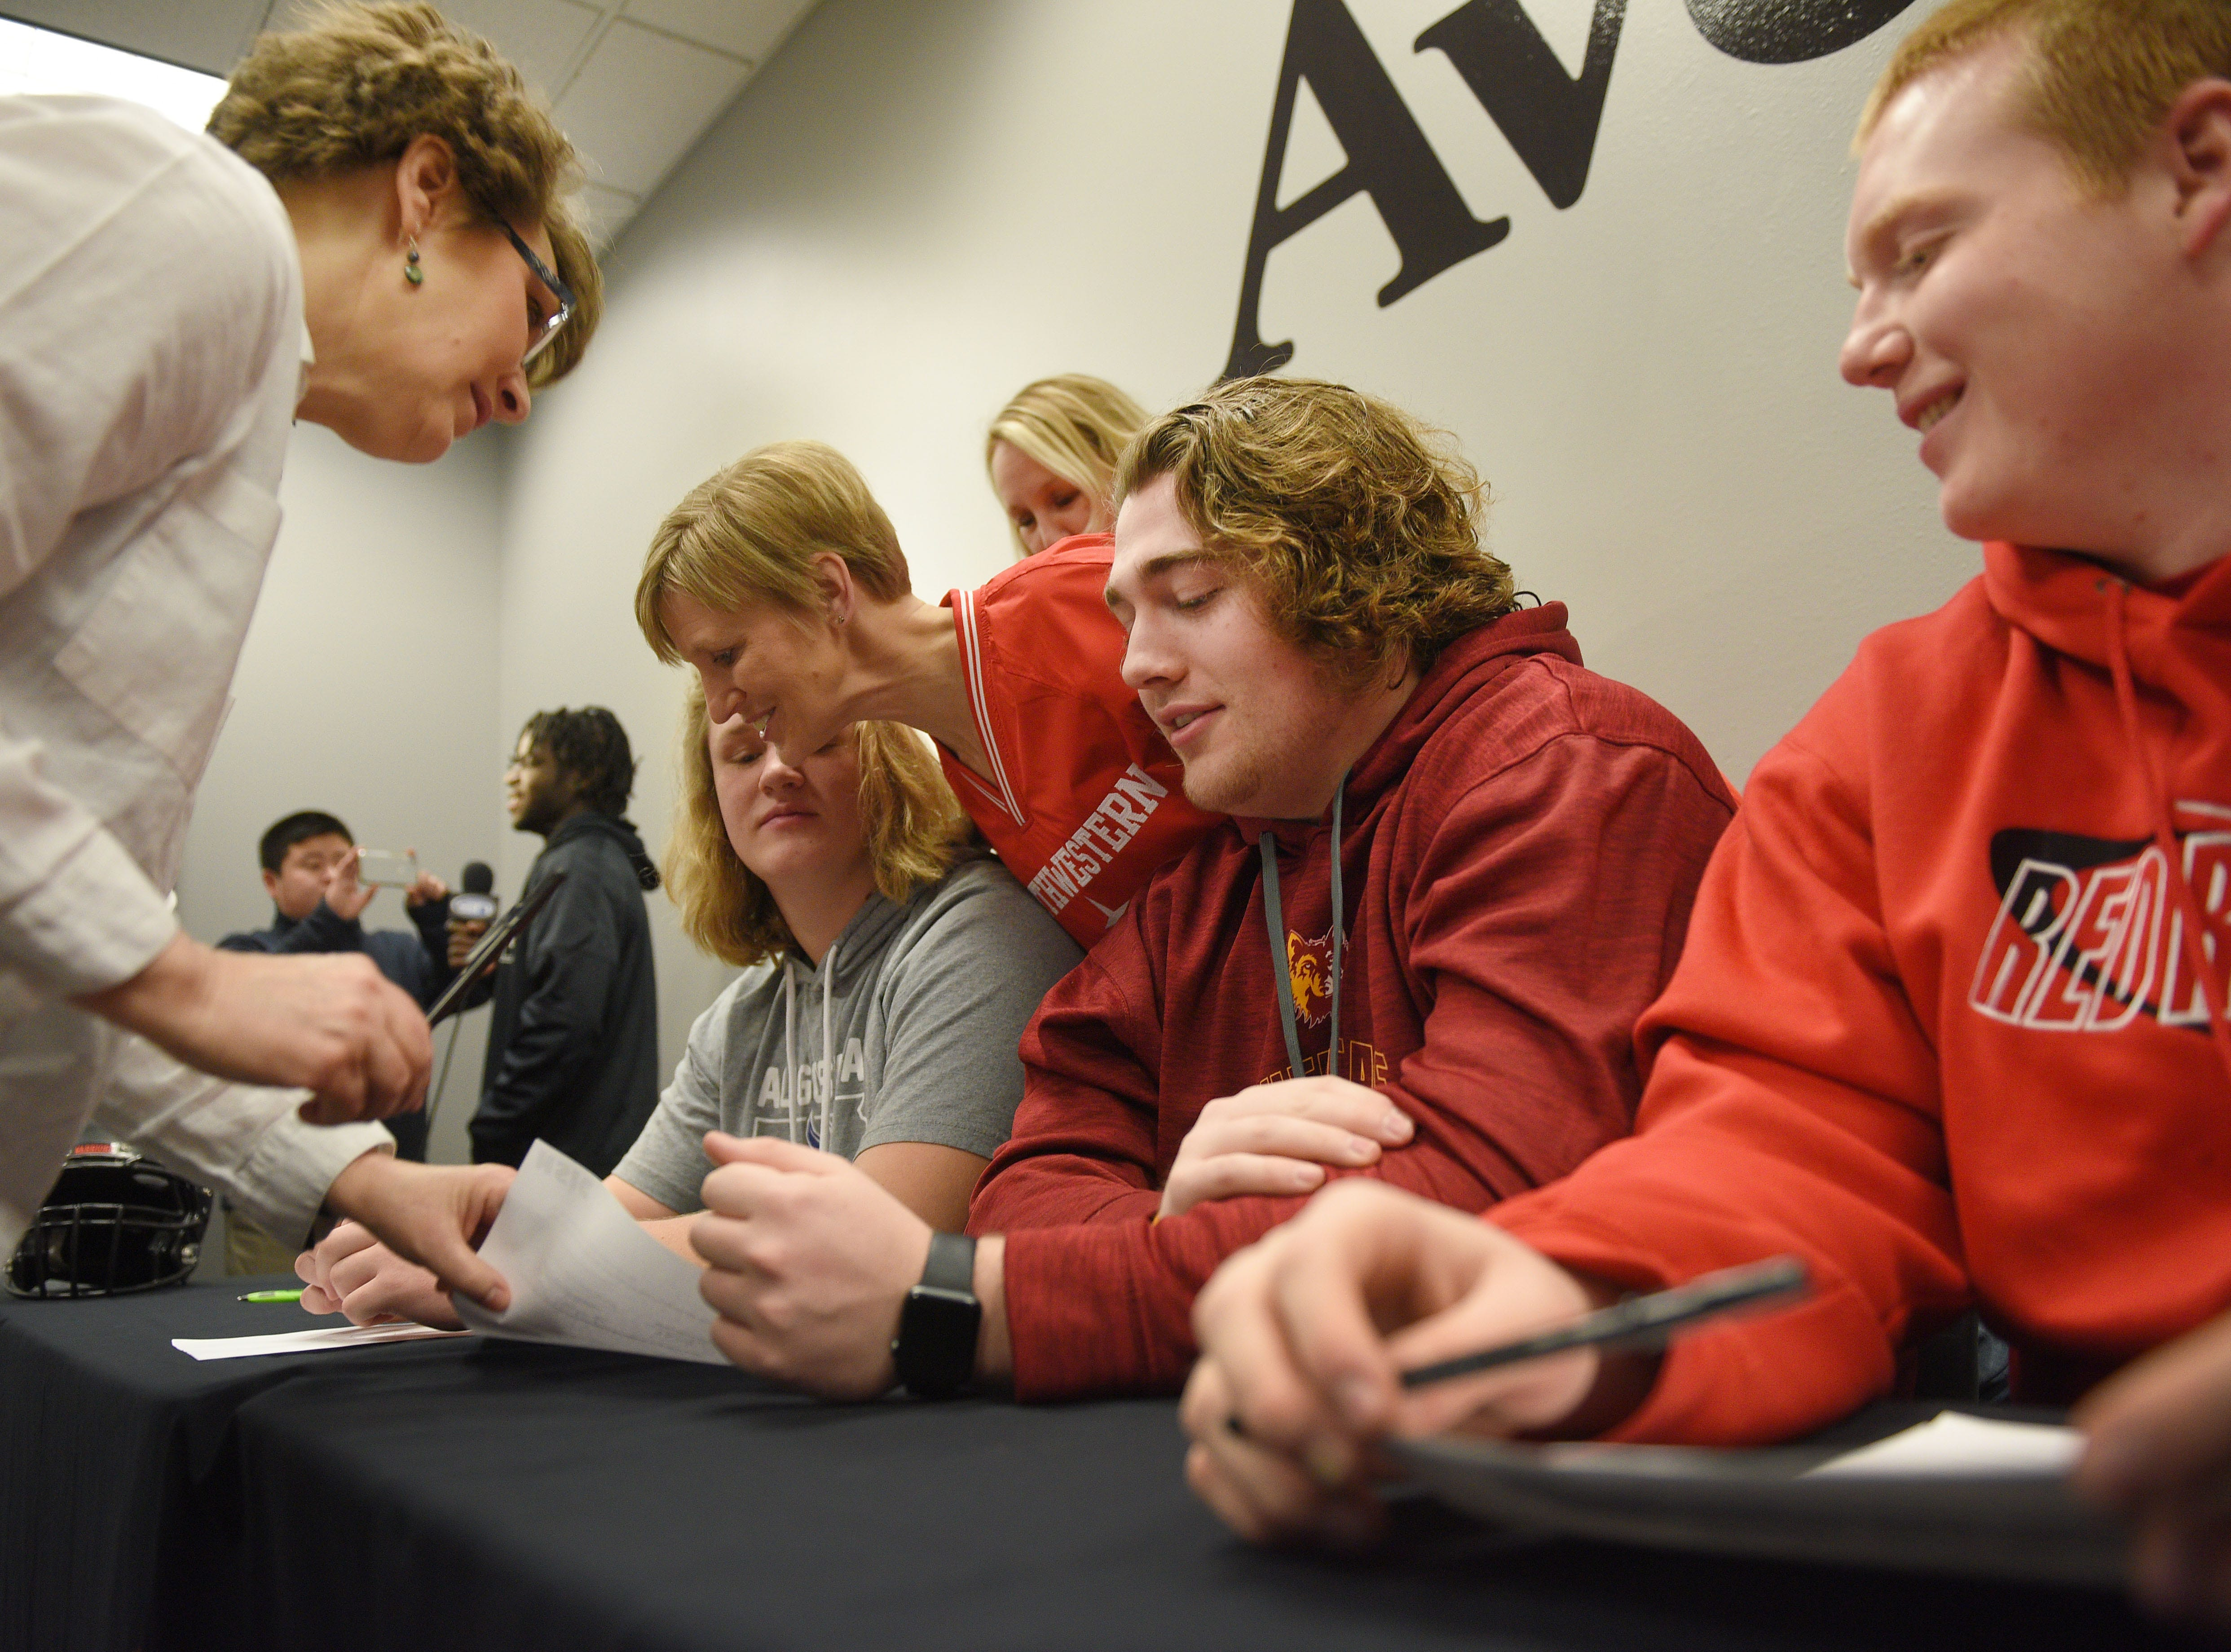 Deb Durland, far left, signs her son Adam Durland's National Letter of Intent to play football at Northern State University during signing day for Washington High School Wednesday, Feb. 6, at Avera Sports Institute in Sioux Falls.